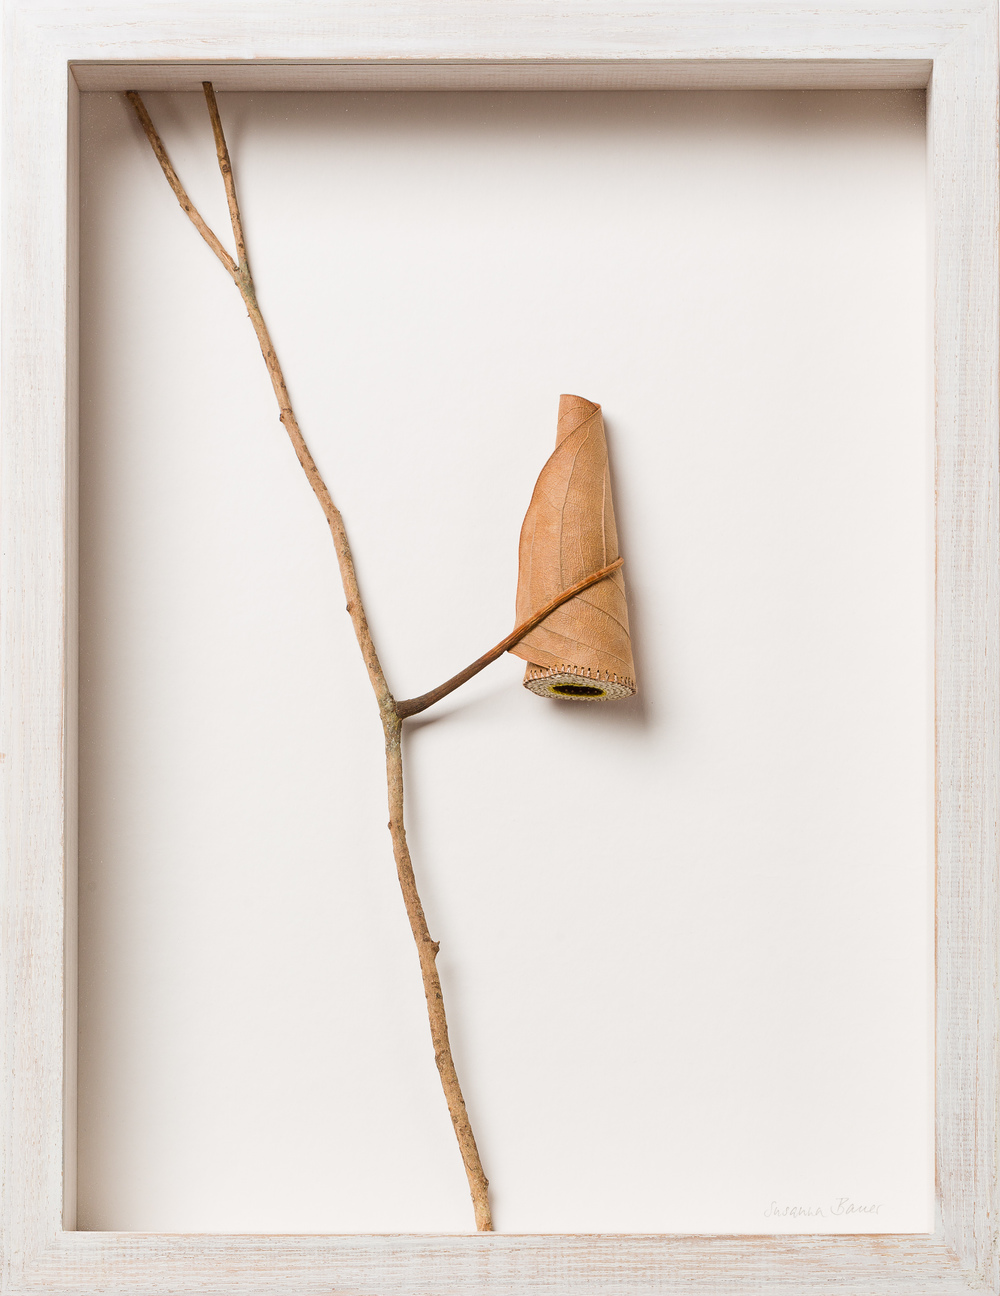 Susanna Bauer Keep I 34.2 x 26.3 x 5 cm magnolia leaf & cotton yarn £ 750